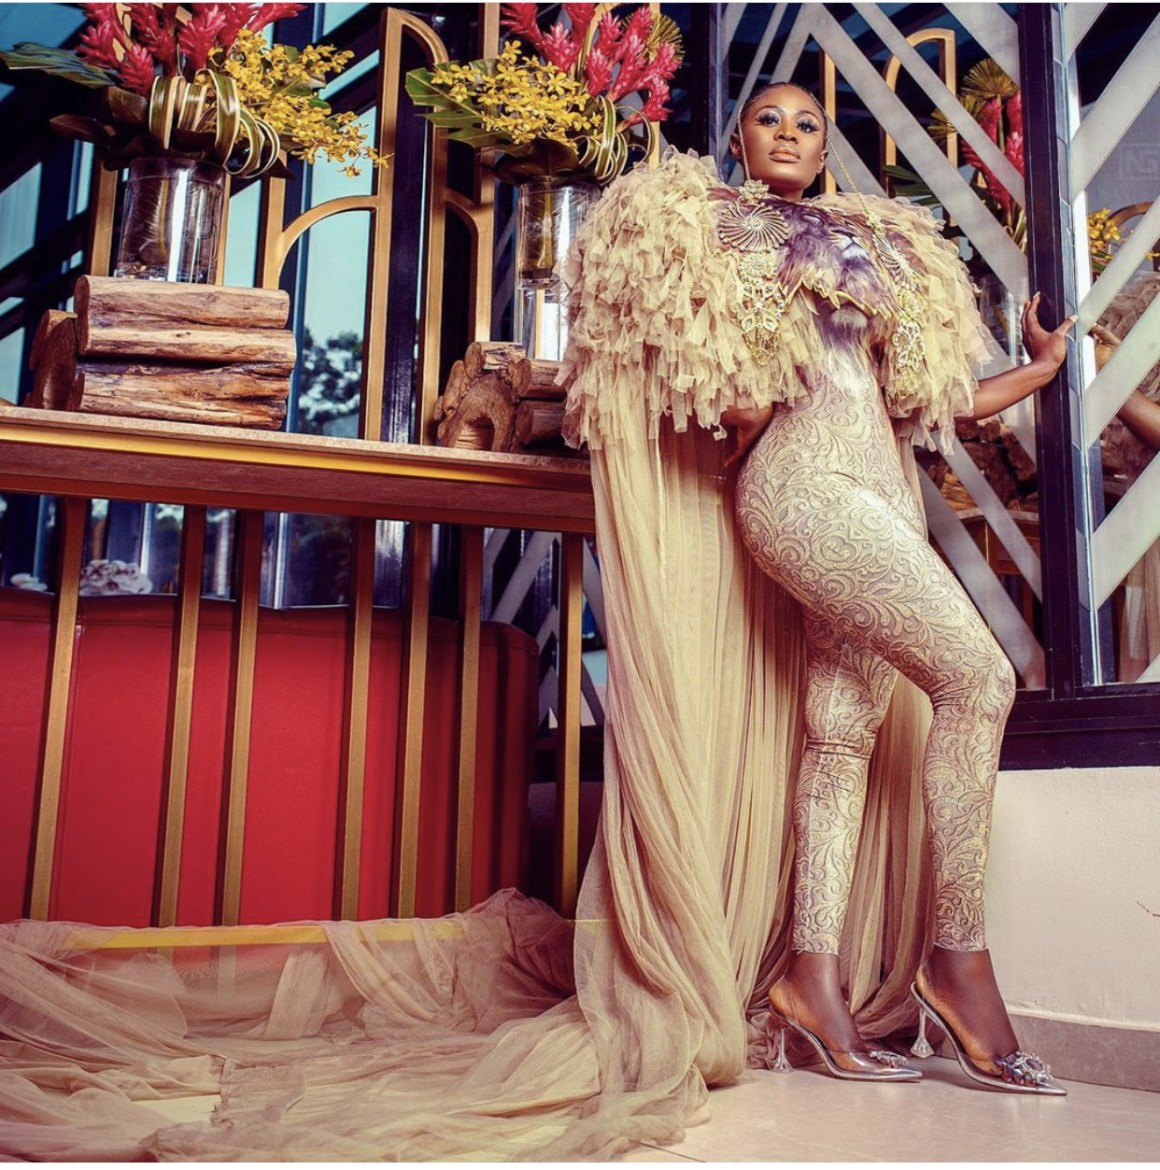 Beyonce wore a custom-made glittering feathery golden catsuit featuring the image of a lion across the bodice and a matching cape and we can see the same thing in Nana Akua Addo's picture.